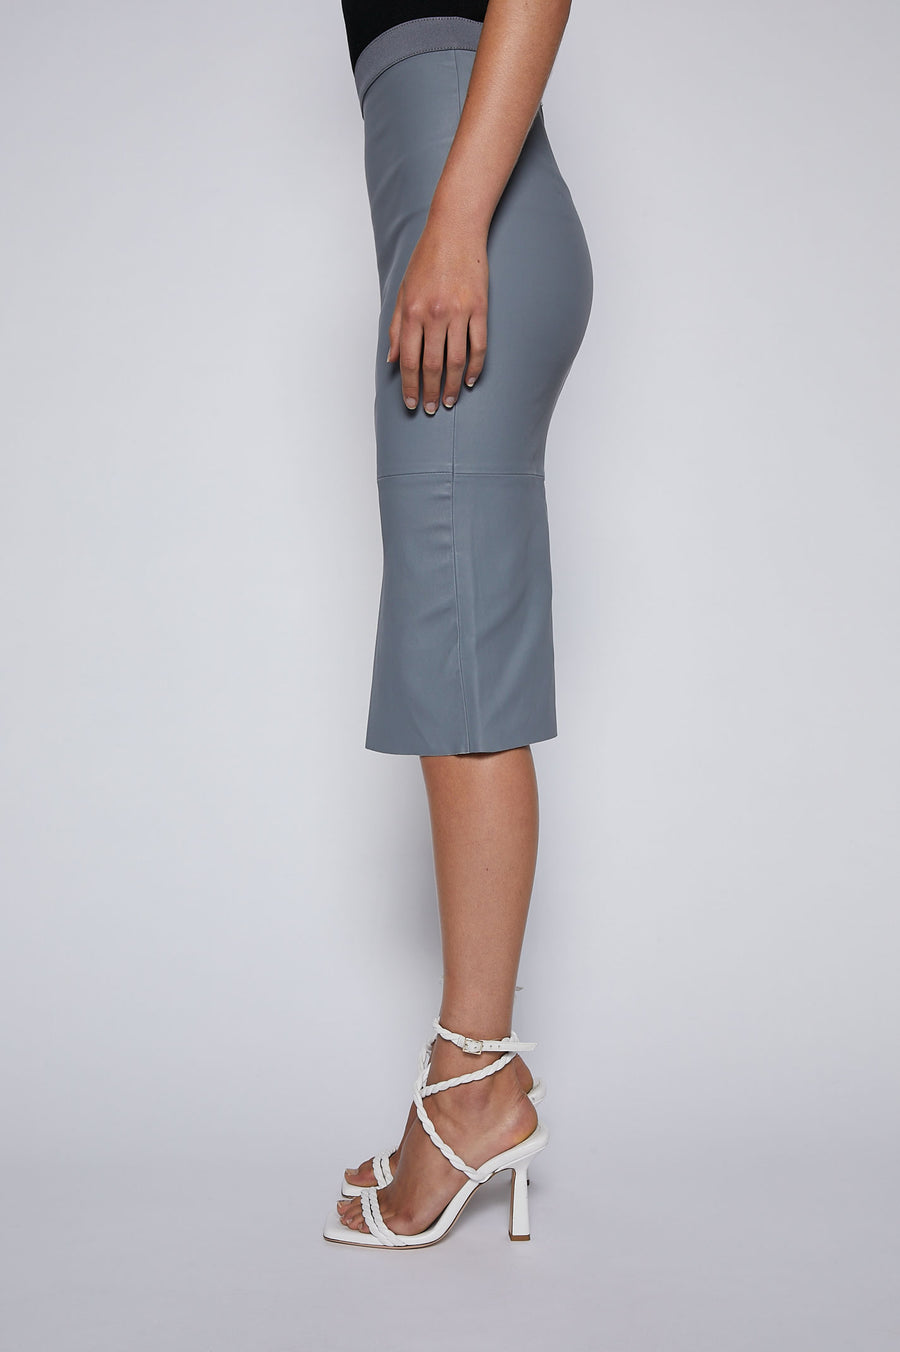 Stretch Leather Pencil Skirt is the staple piece to take your look from desk to dinner